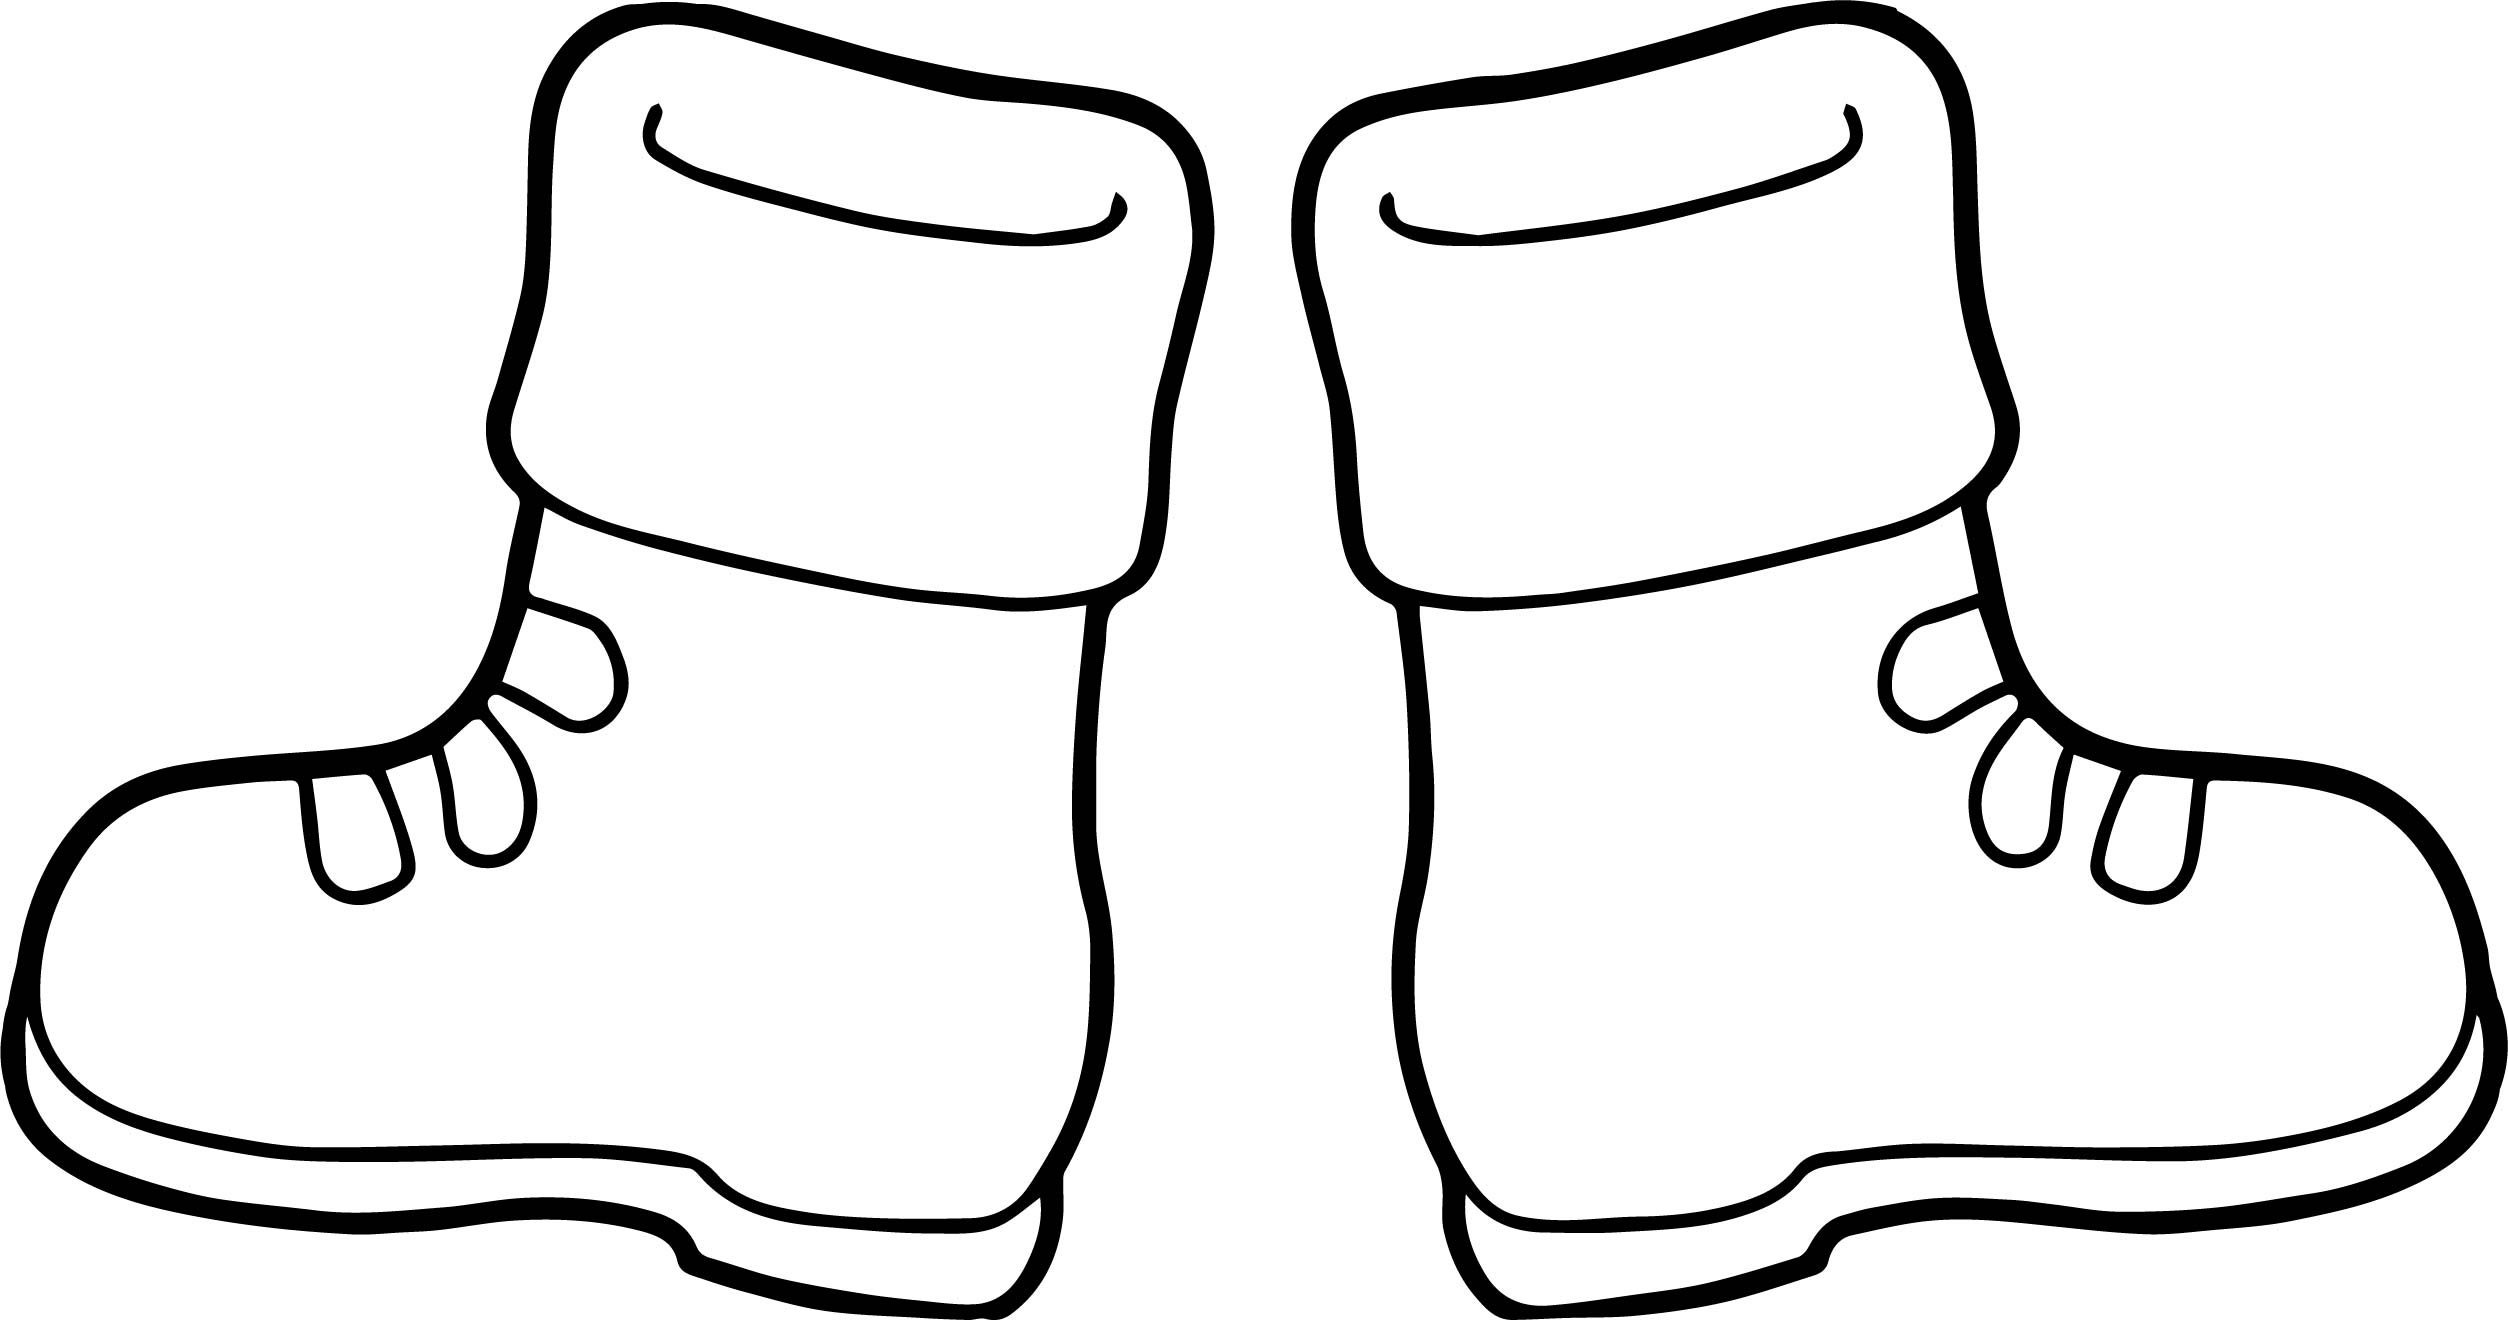 boot coloring pages - photo#5